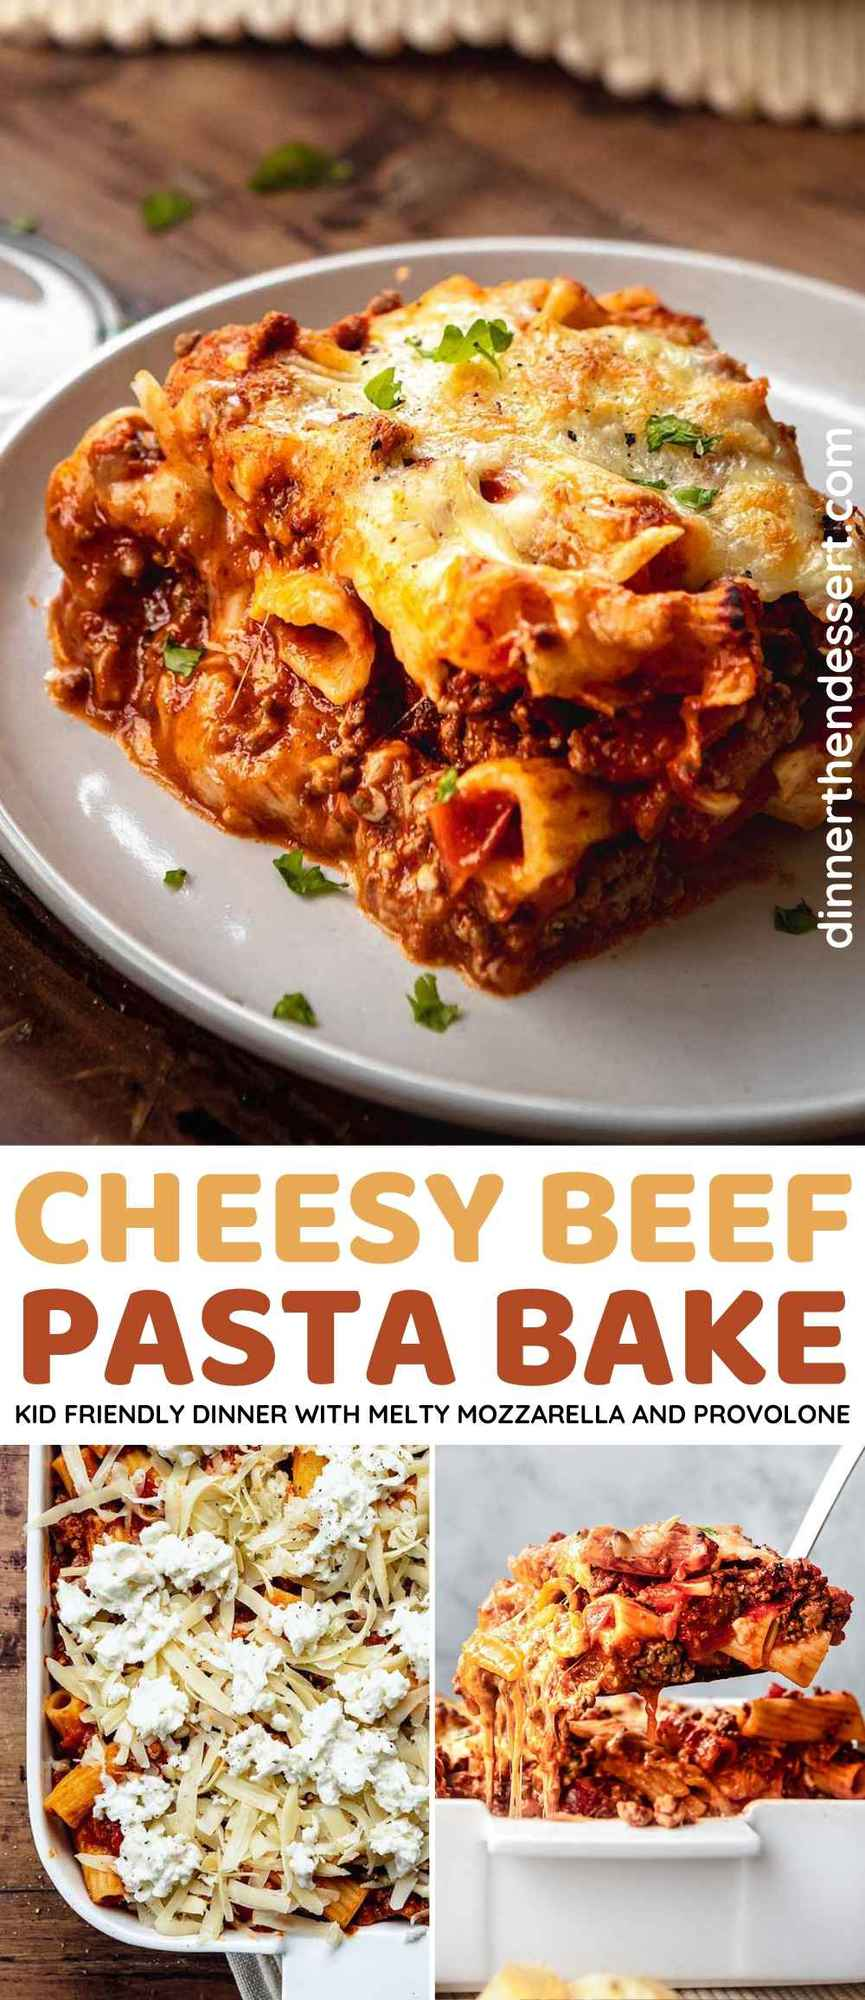 Cheesy Beef Pasta Bake Collage